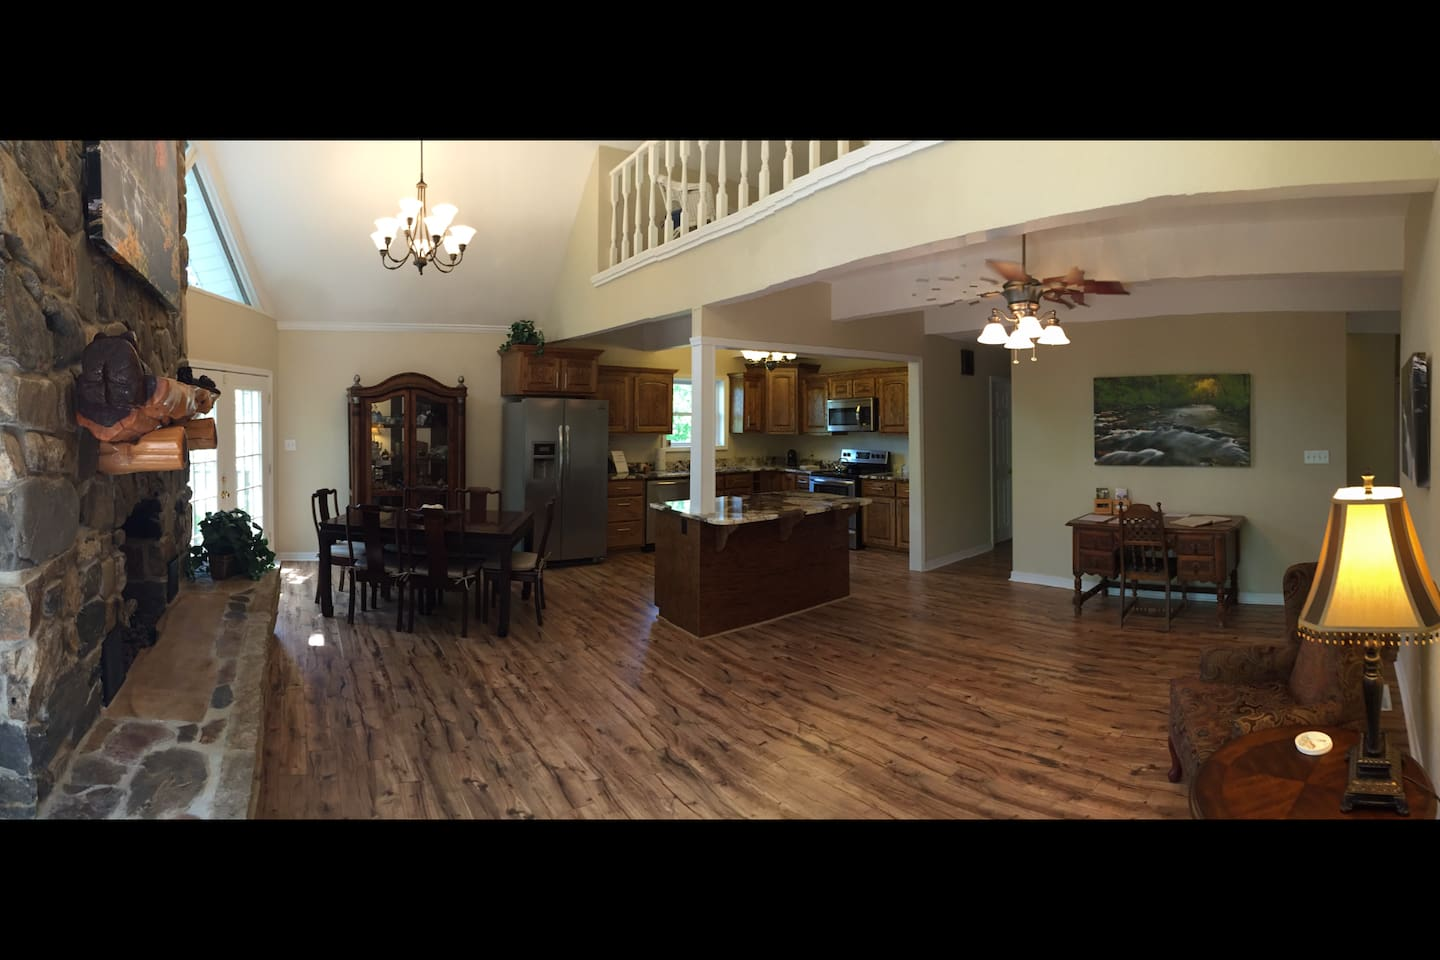 Main living room and full kitchen